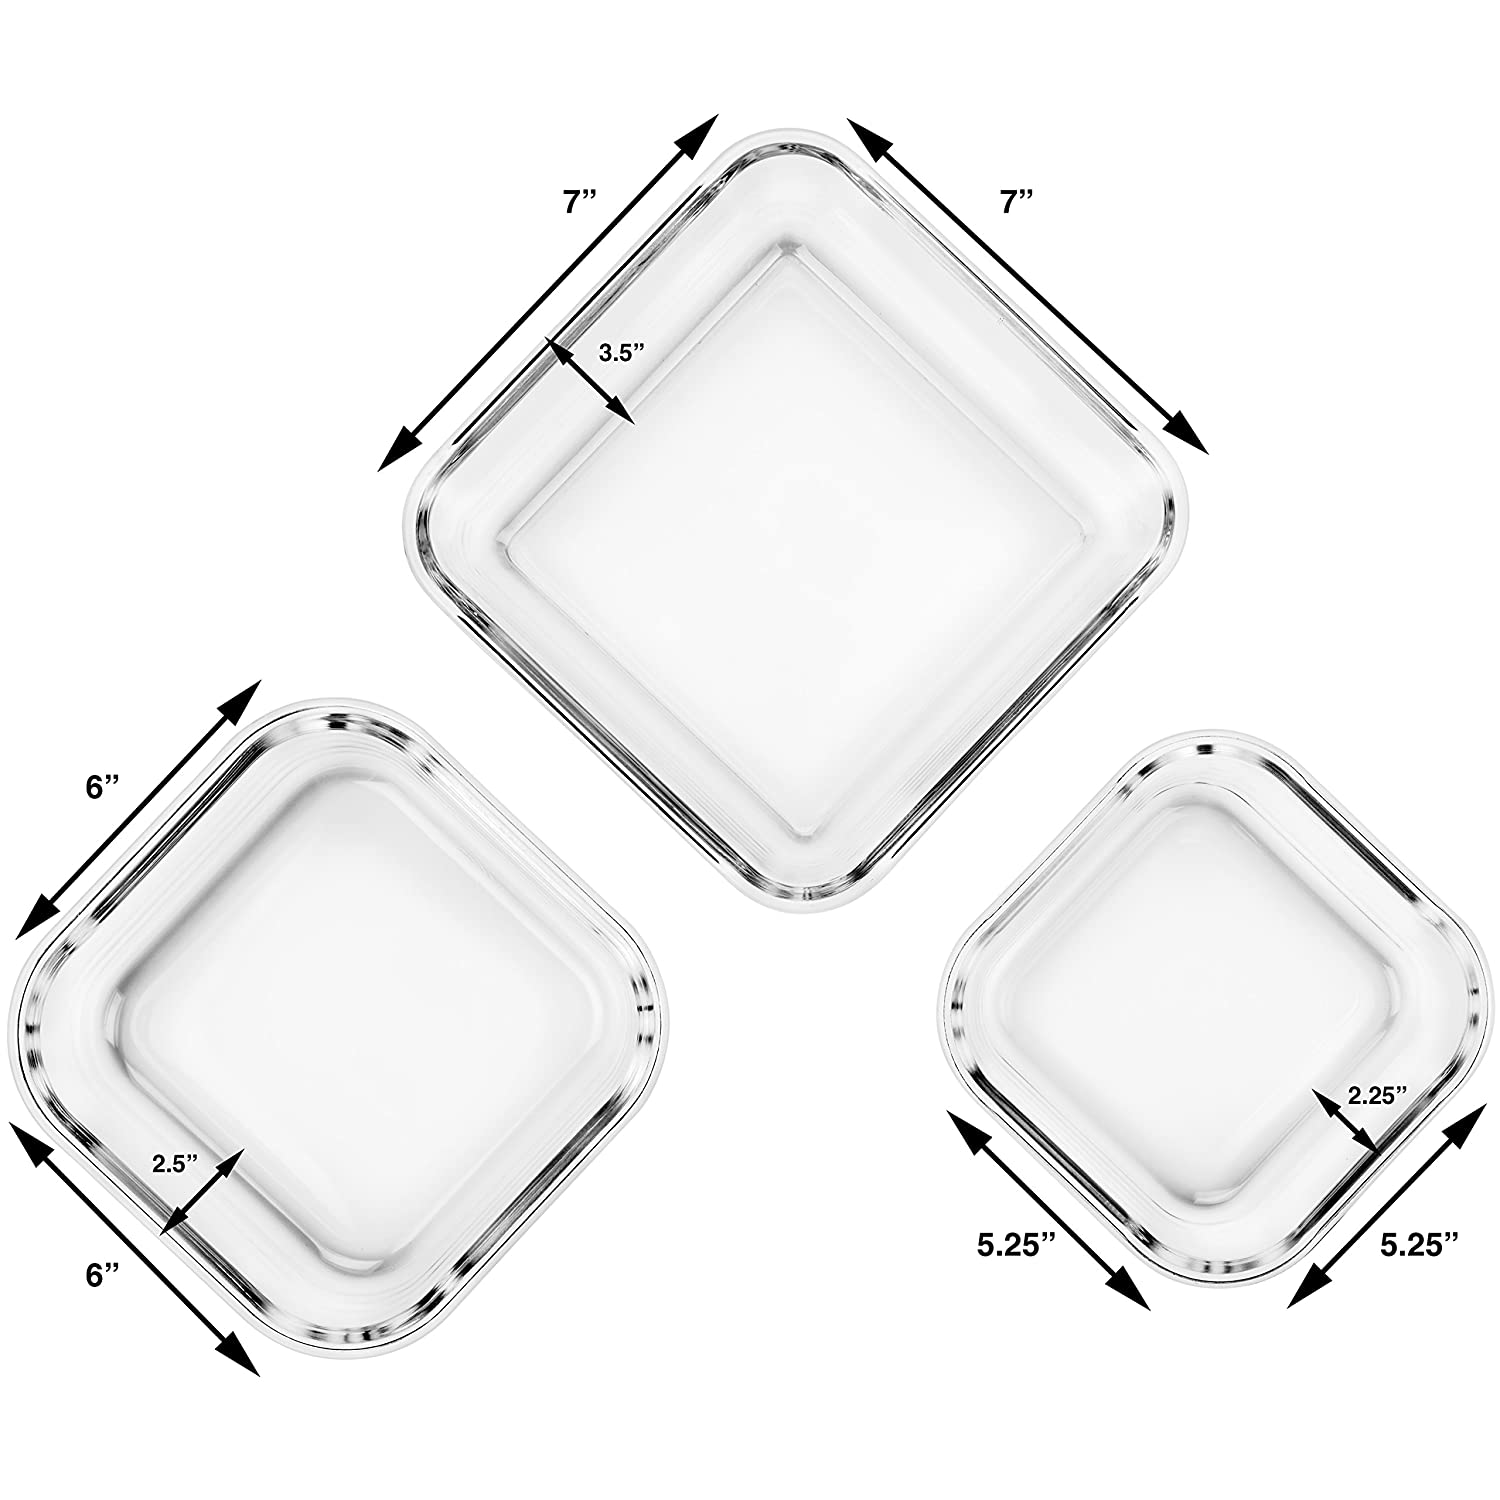 Extra Large Glass Food Storage Containers with Airtight Lid 6 Pc 3 containers with lids